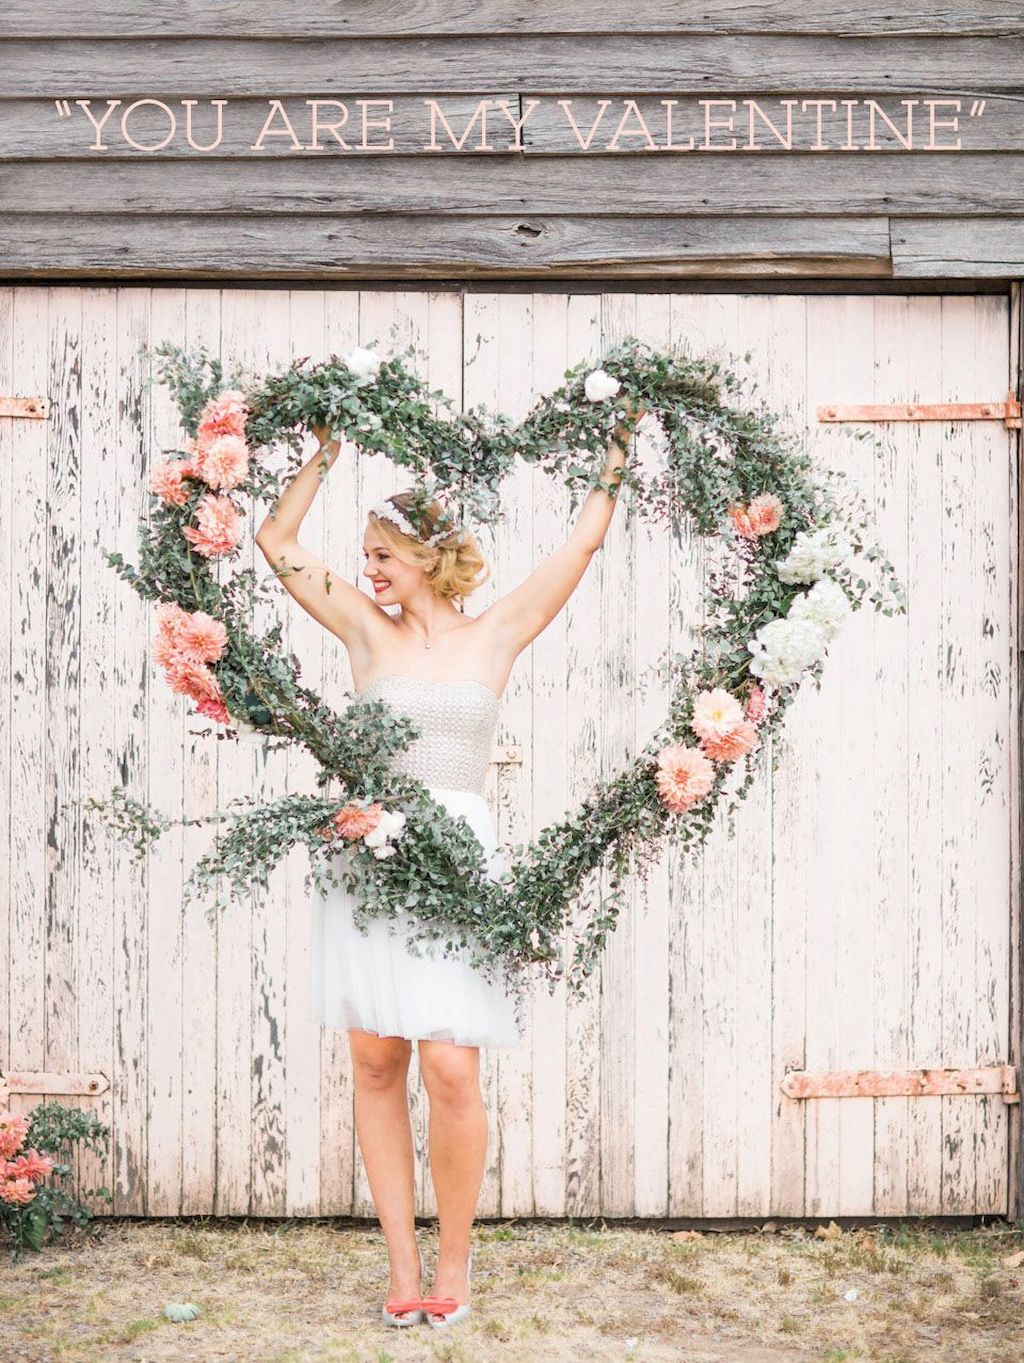 25 Fresh Valentine Bridal Shower Decoration Ideas #bridalshowerdecorations